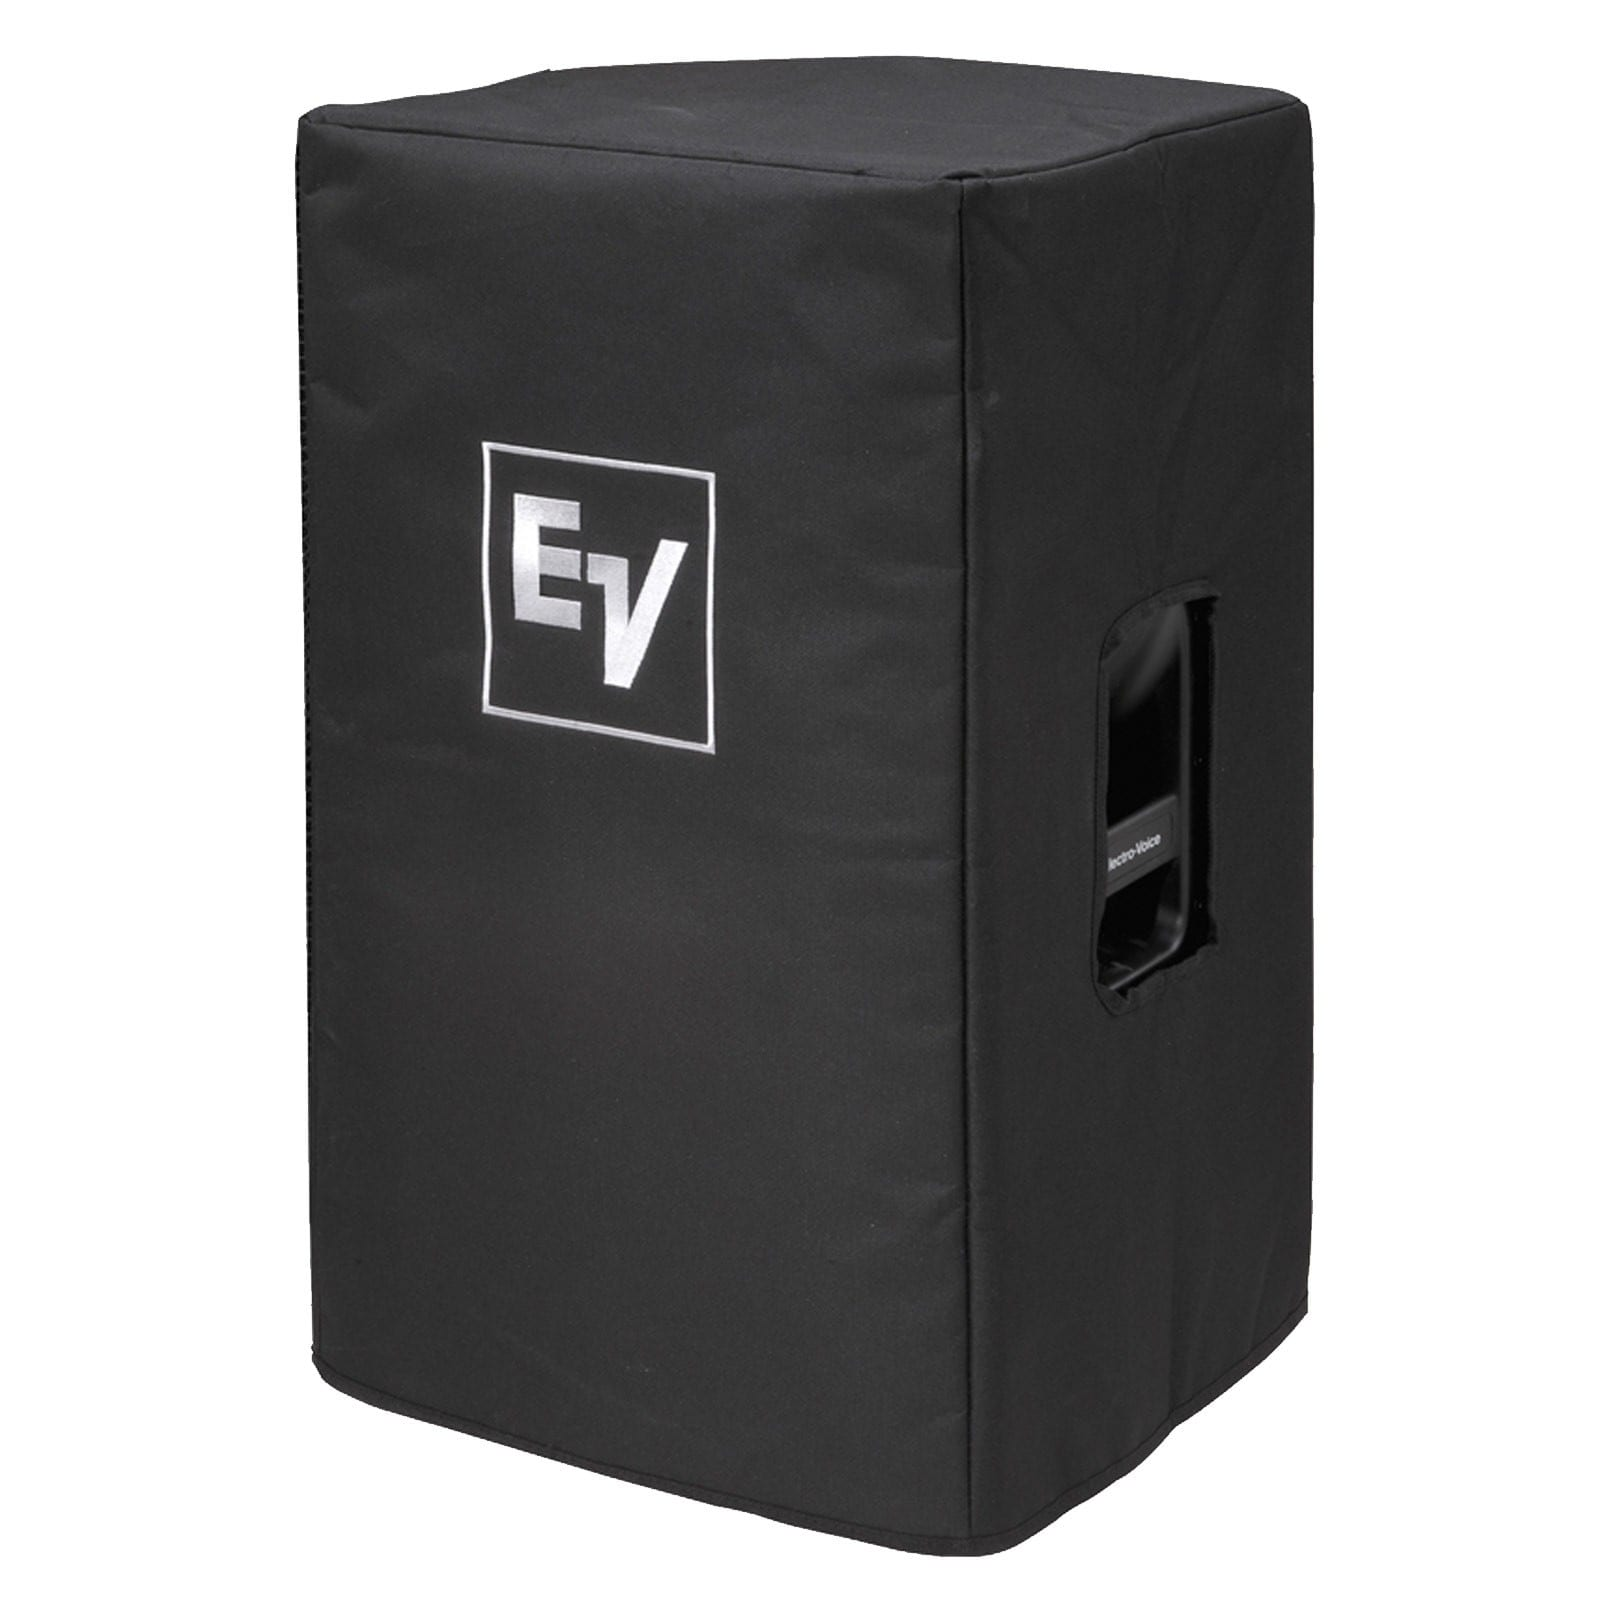 electro-voice-elx200-12-cvr-padded-cover-for-elx200-12-or-elx200-12p-cfc